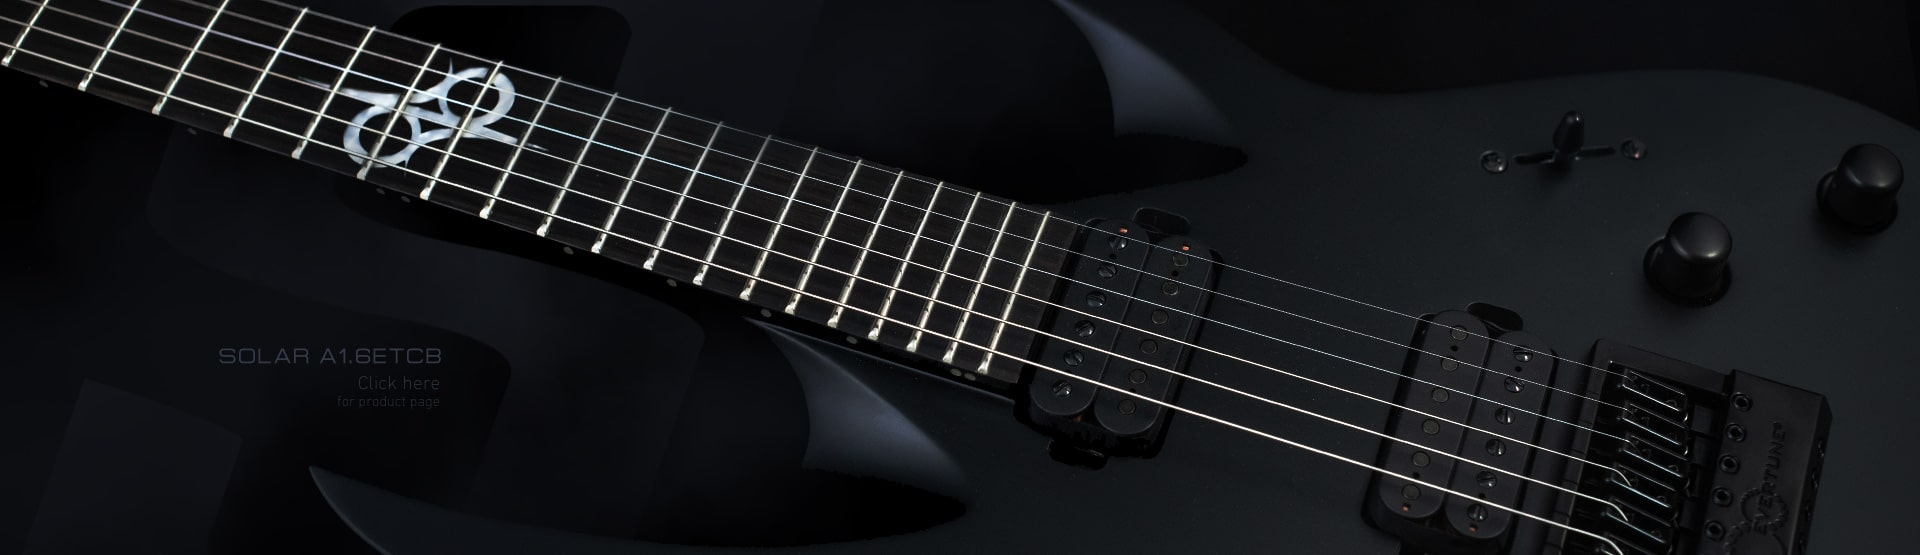 Welcome To The Solar Guitars Website Schematics For Pickups And Prev